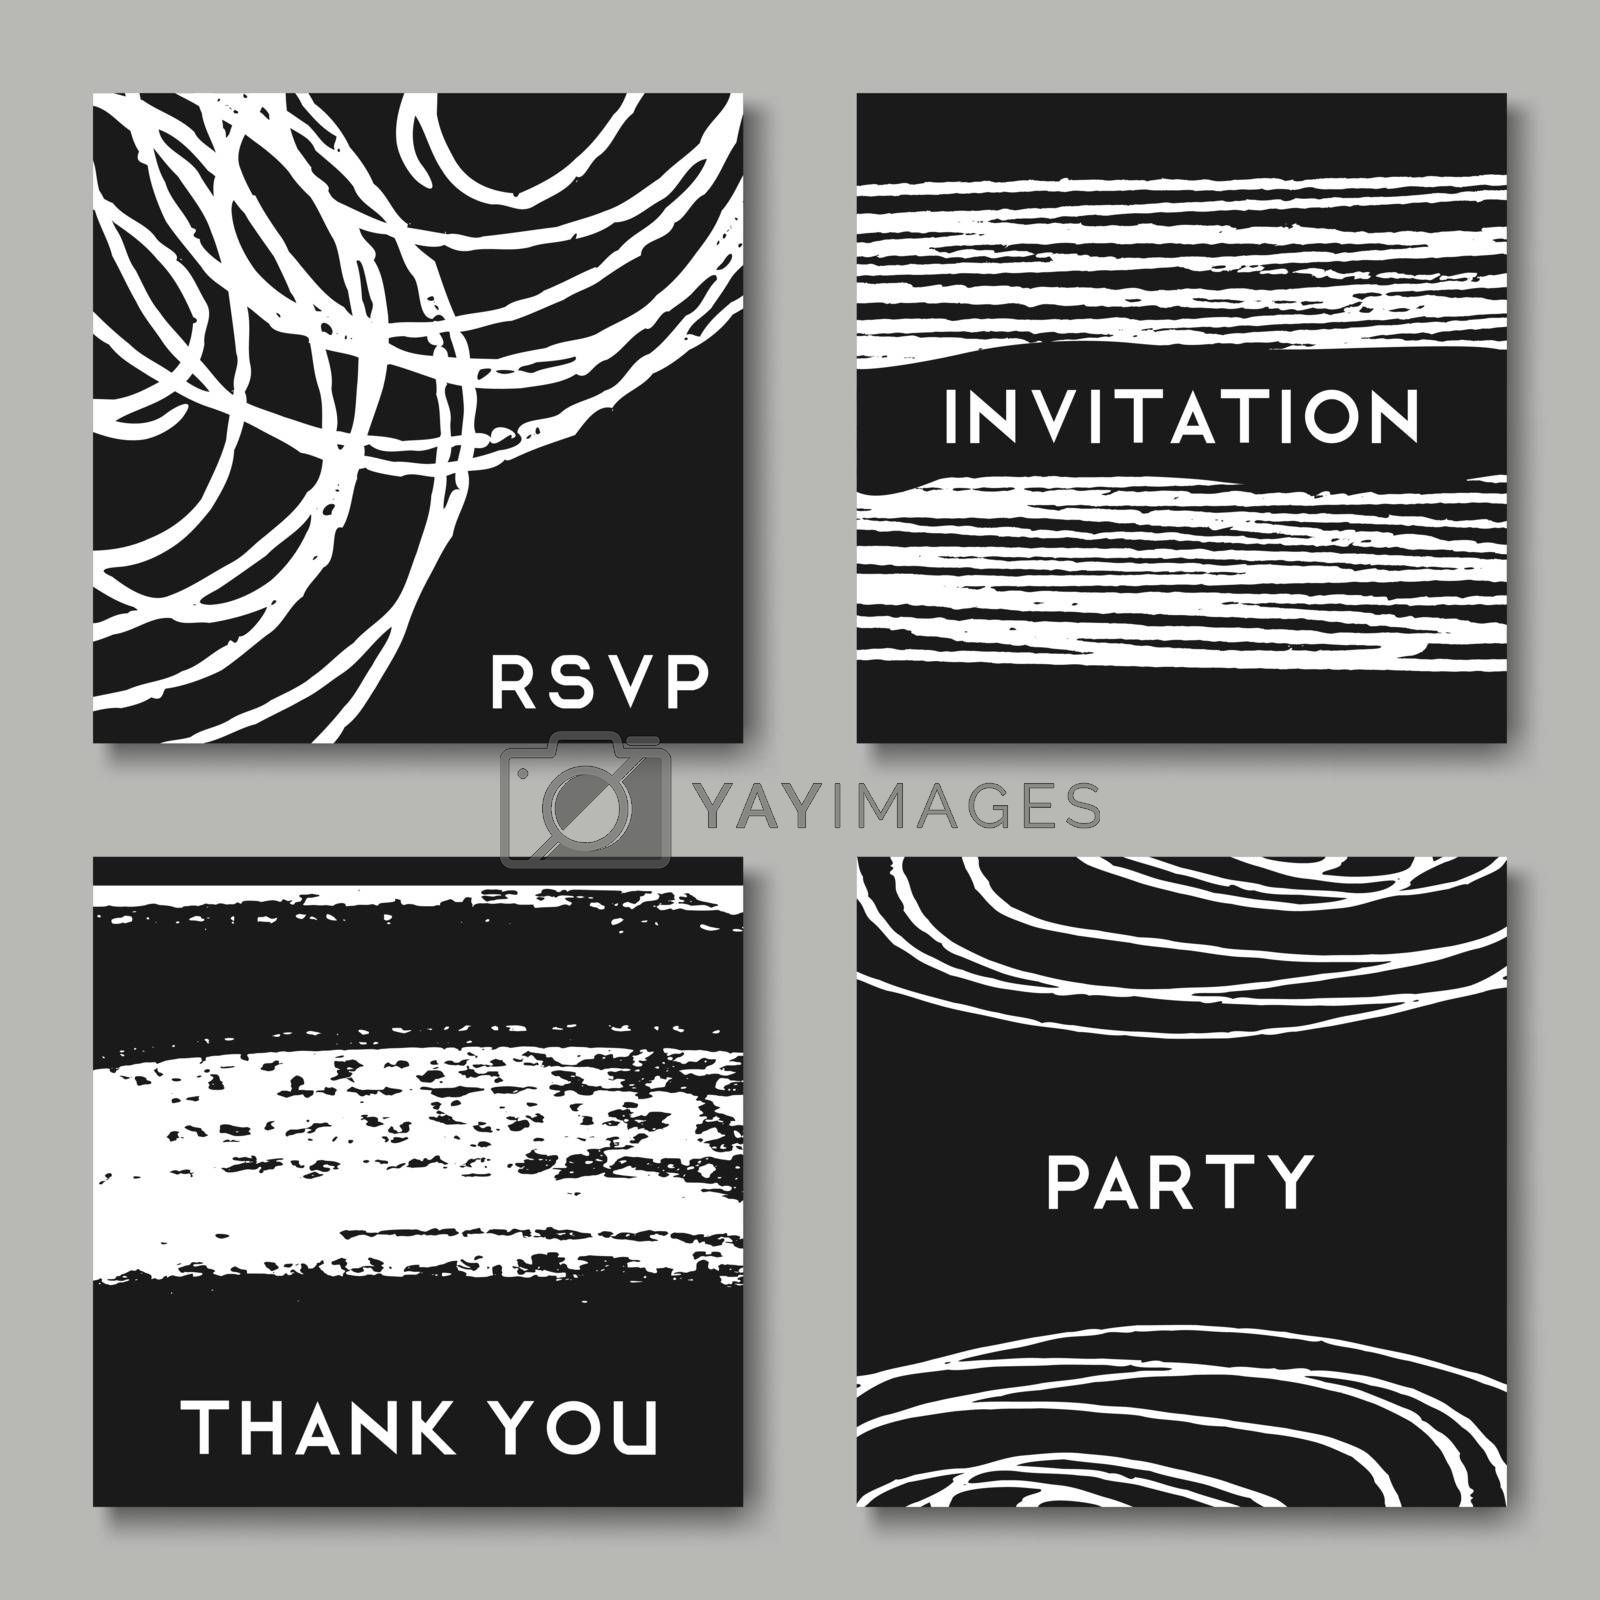 A set of hand drawn style greeting card templates in black and white. Abstract brush strokes, ink doodles and floral element pattern designs with copy space. EPS 10 file, gradient mesh used.